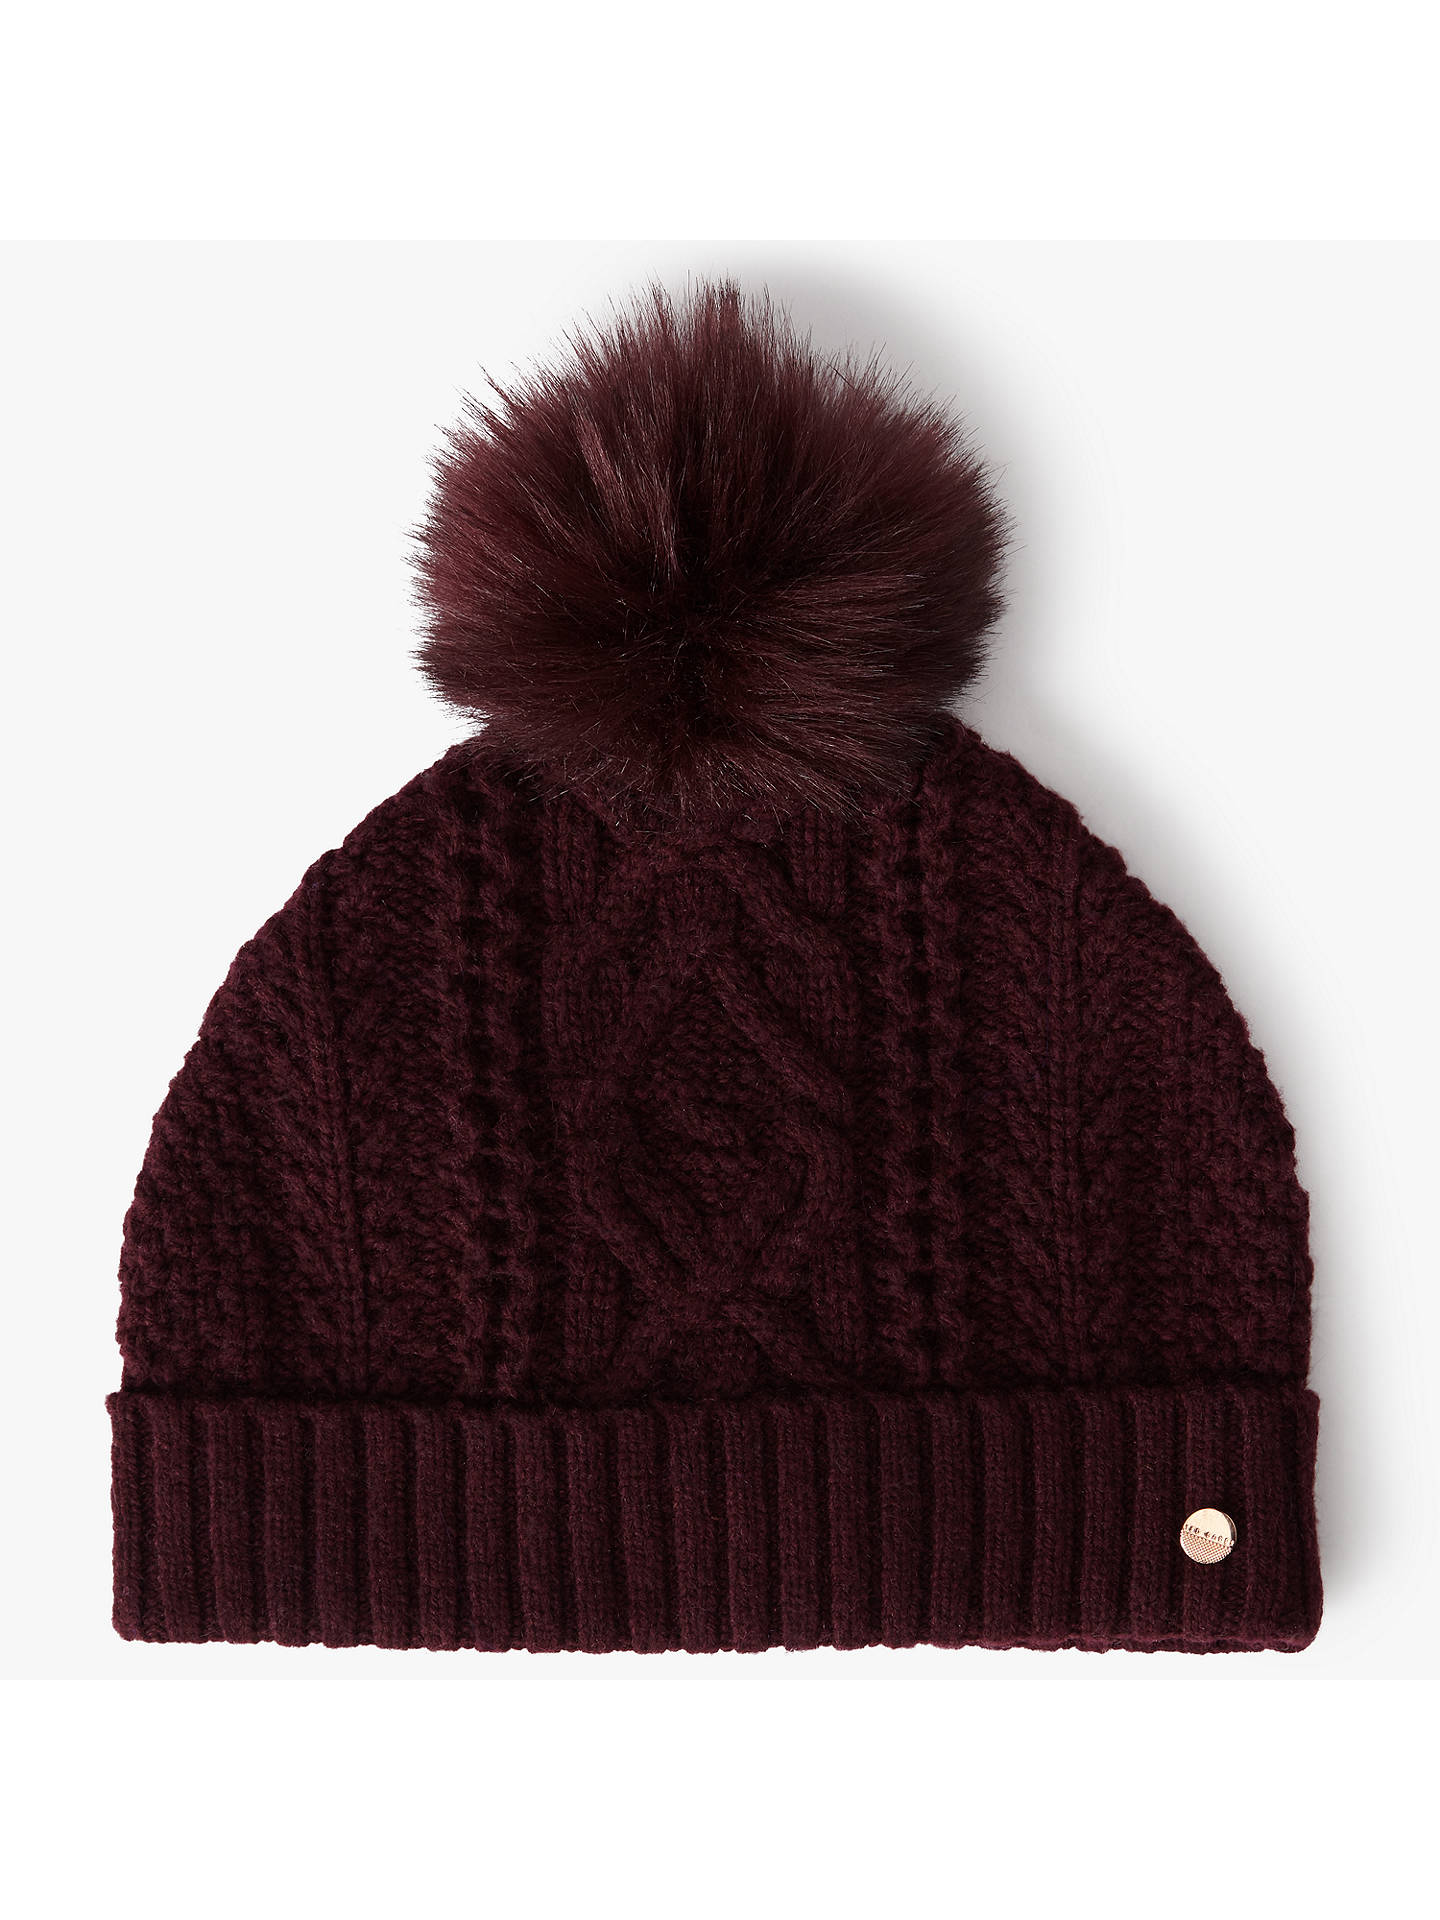 BuyTed Baker Kyliee Faux Fur Pom Hat f8f3a644c0e